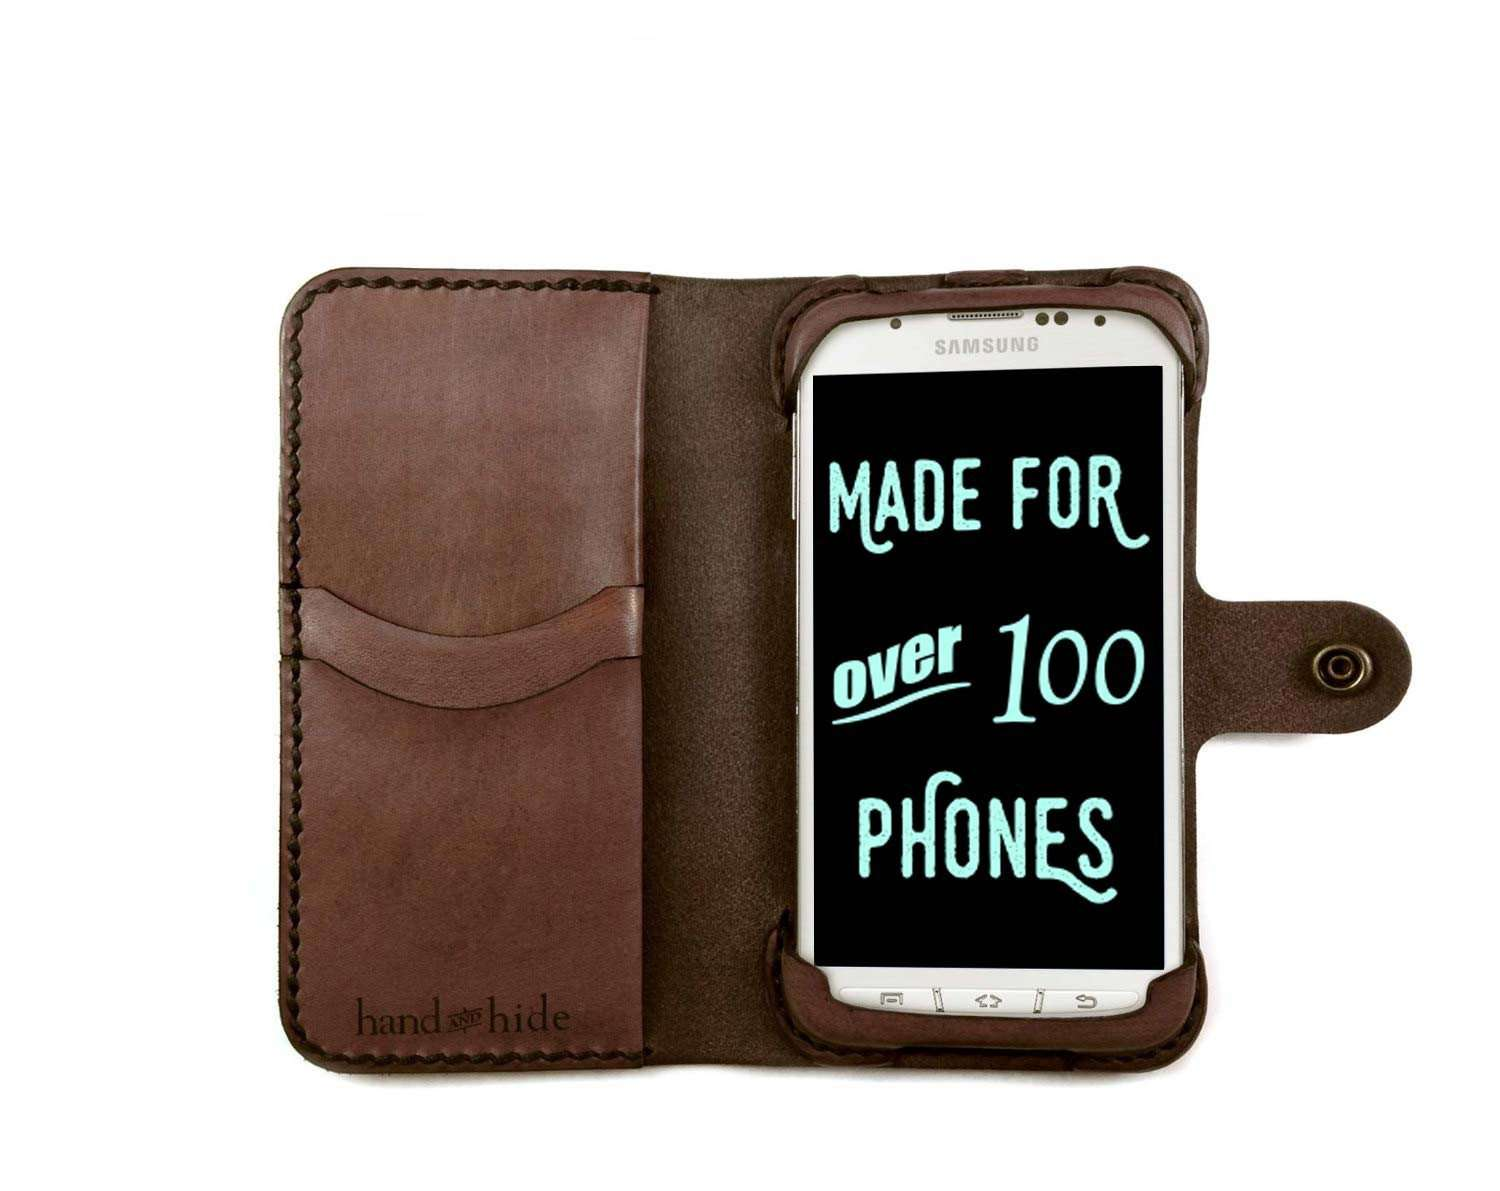 new product 9326a 4f9c3 Samsung Galaxy S4 Active Classic Wallet Case